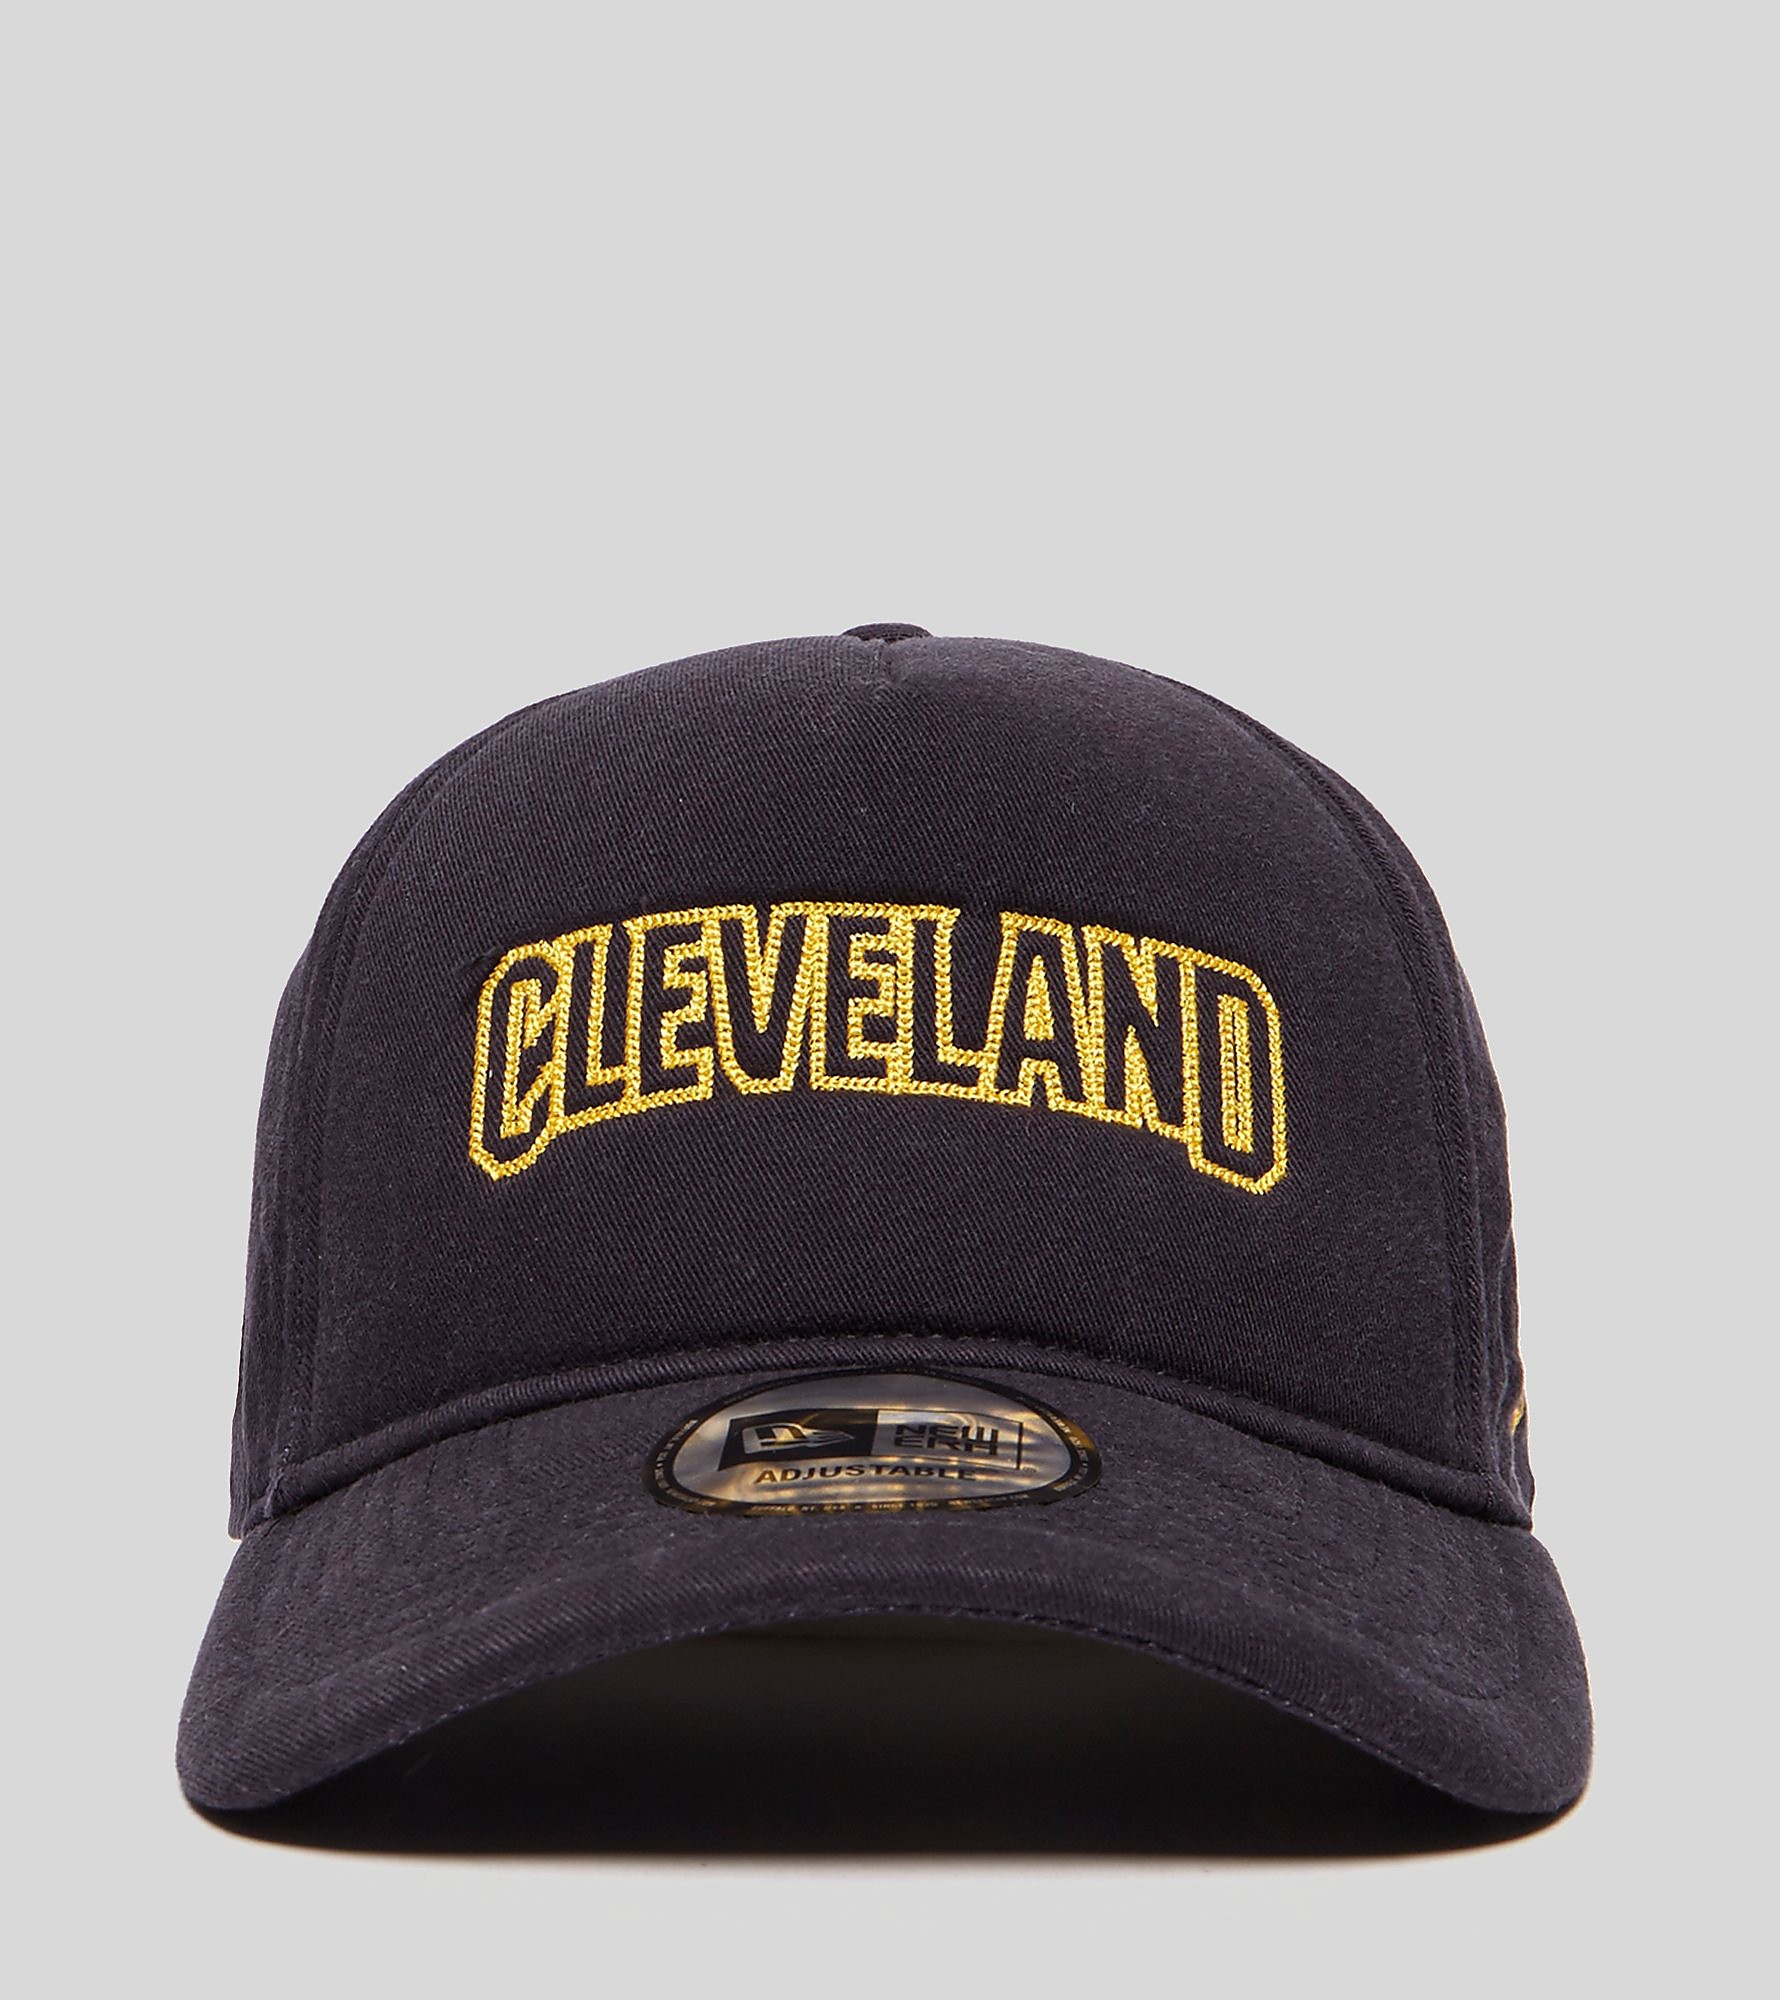 New Era 9FORTY Cavs Trucker Cap